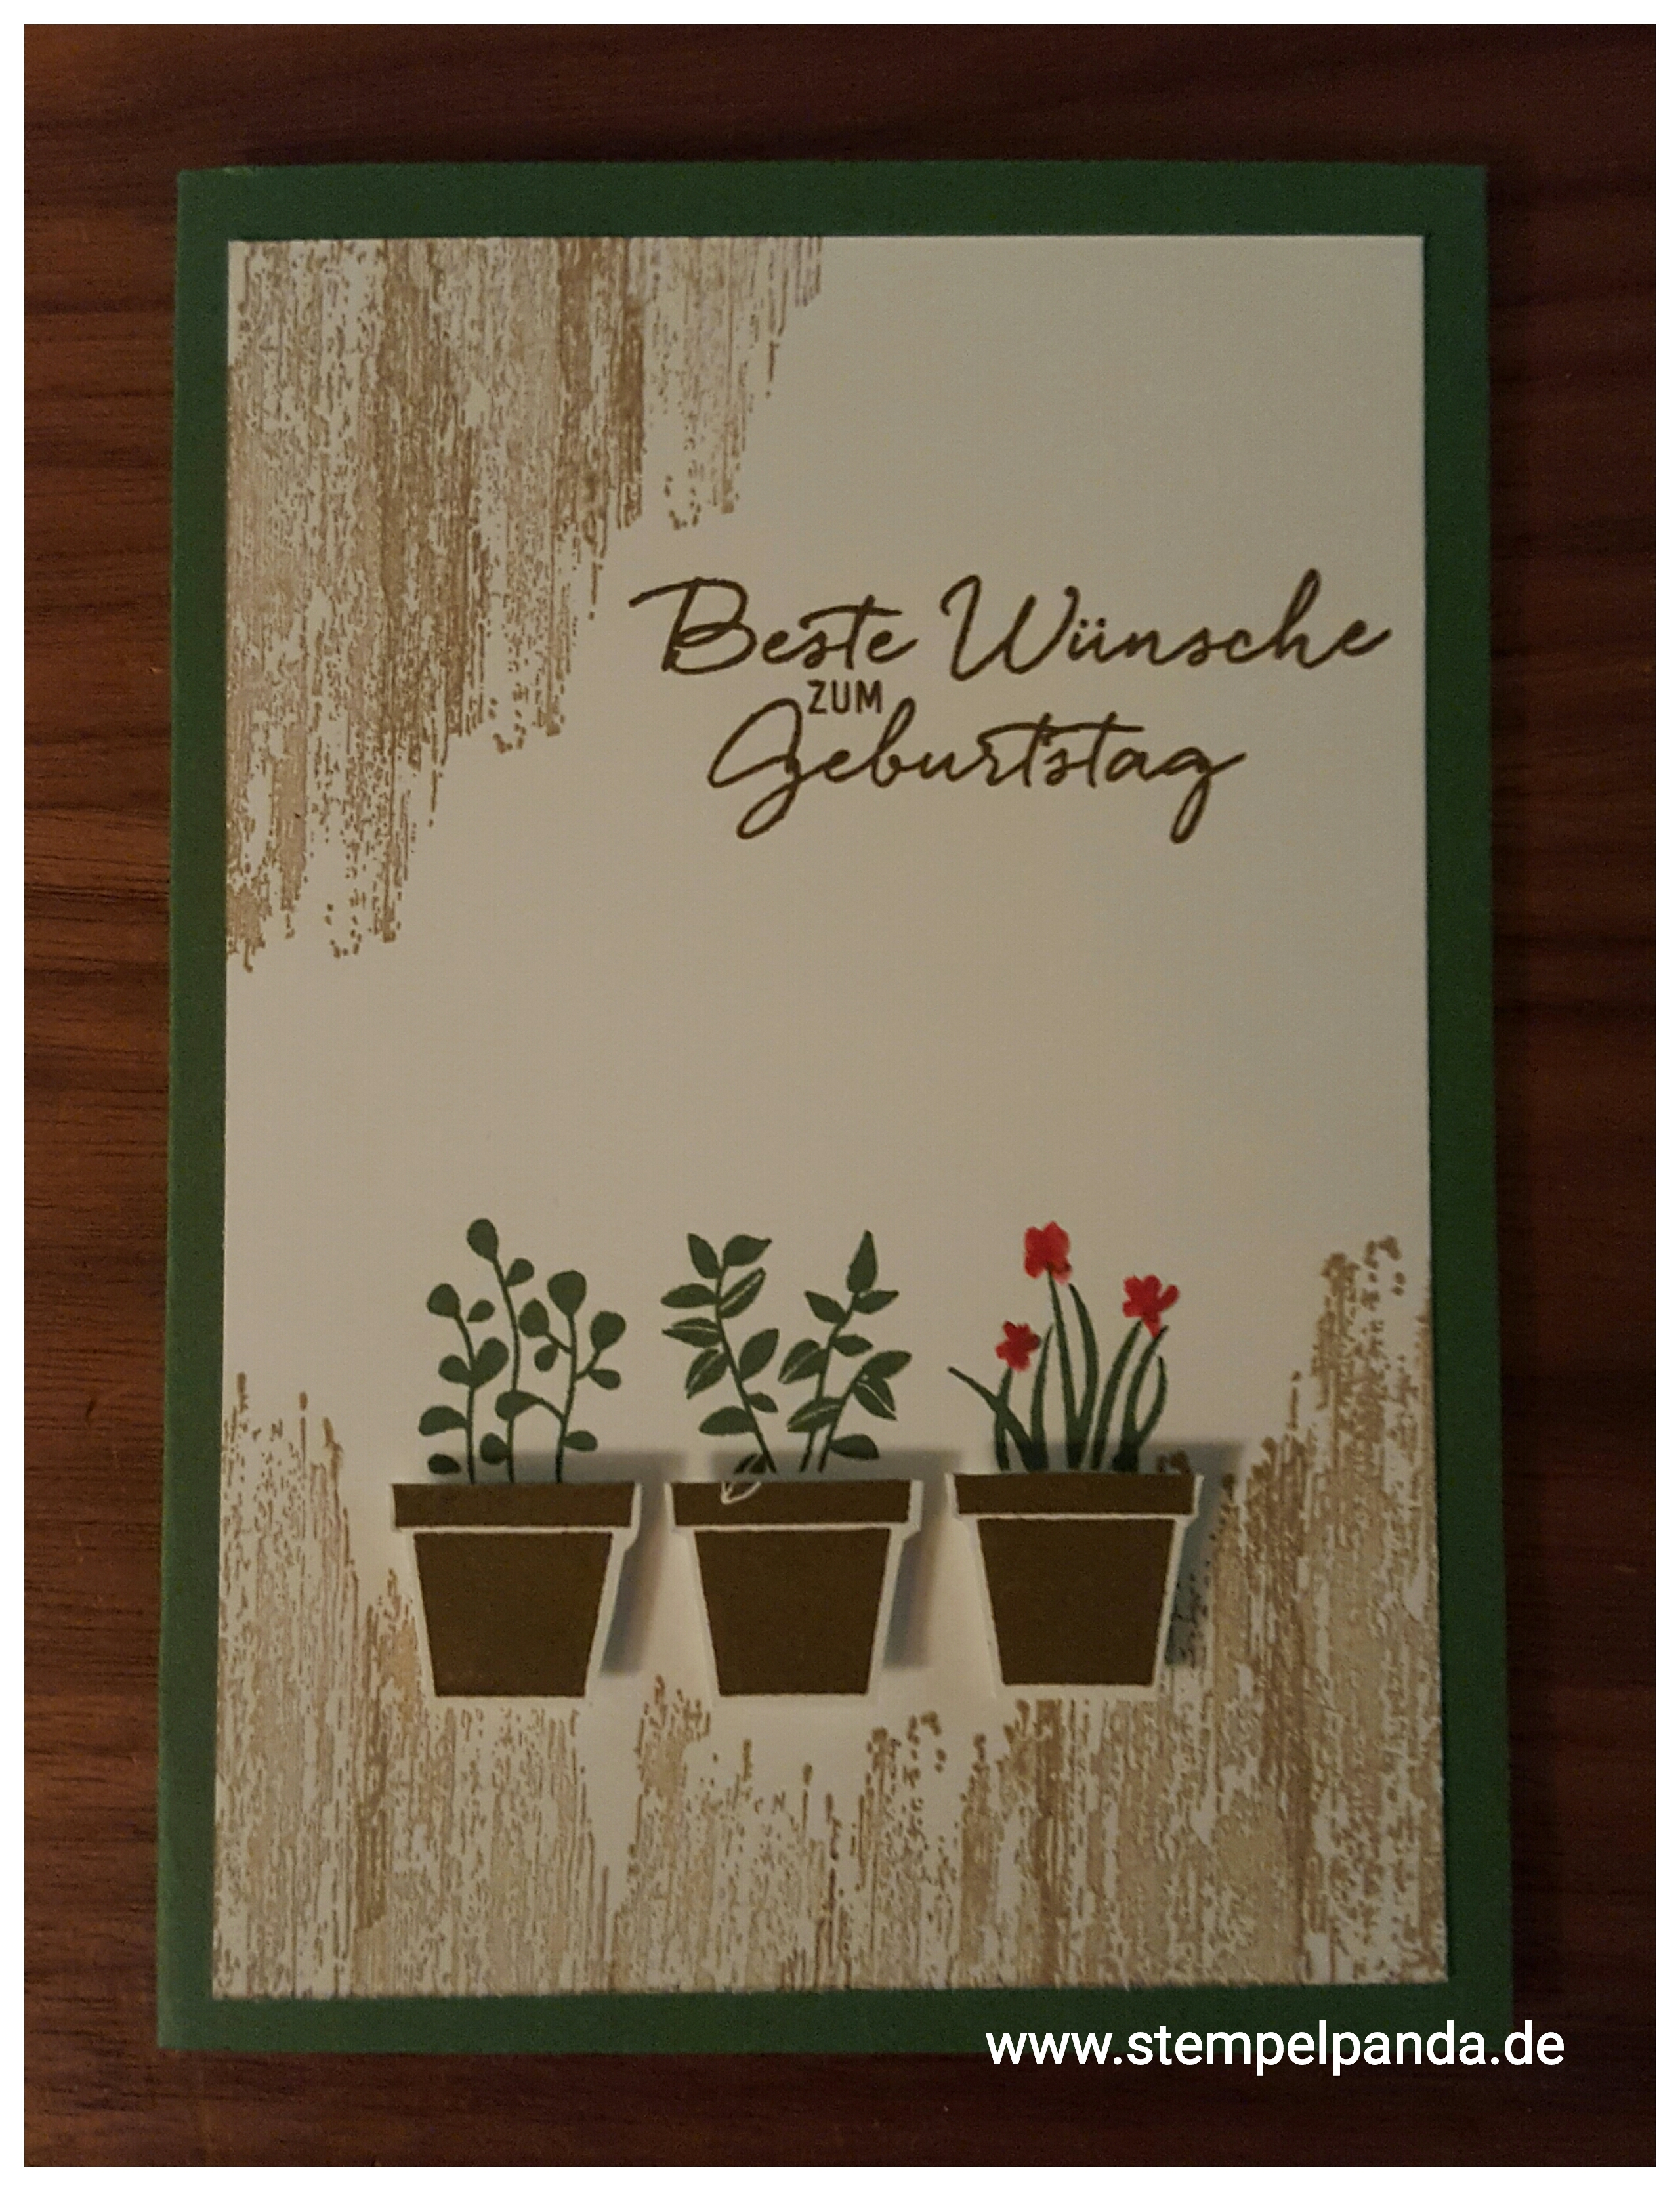 Stampin up stempelpanda gift from the garden geburtstag birthday